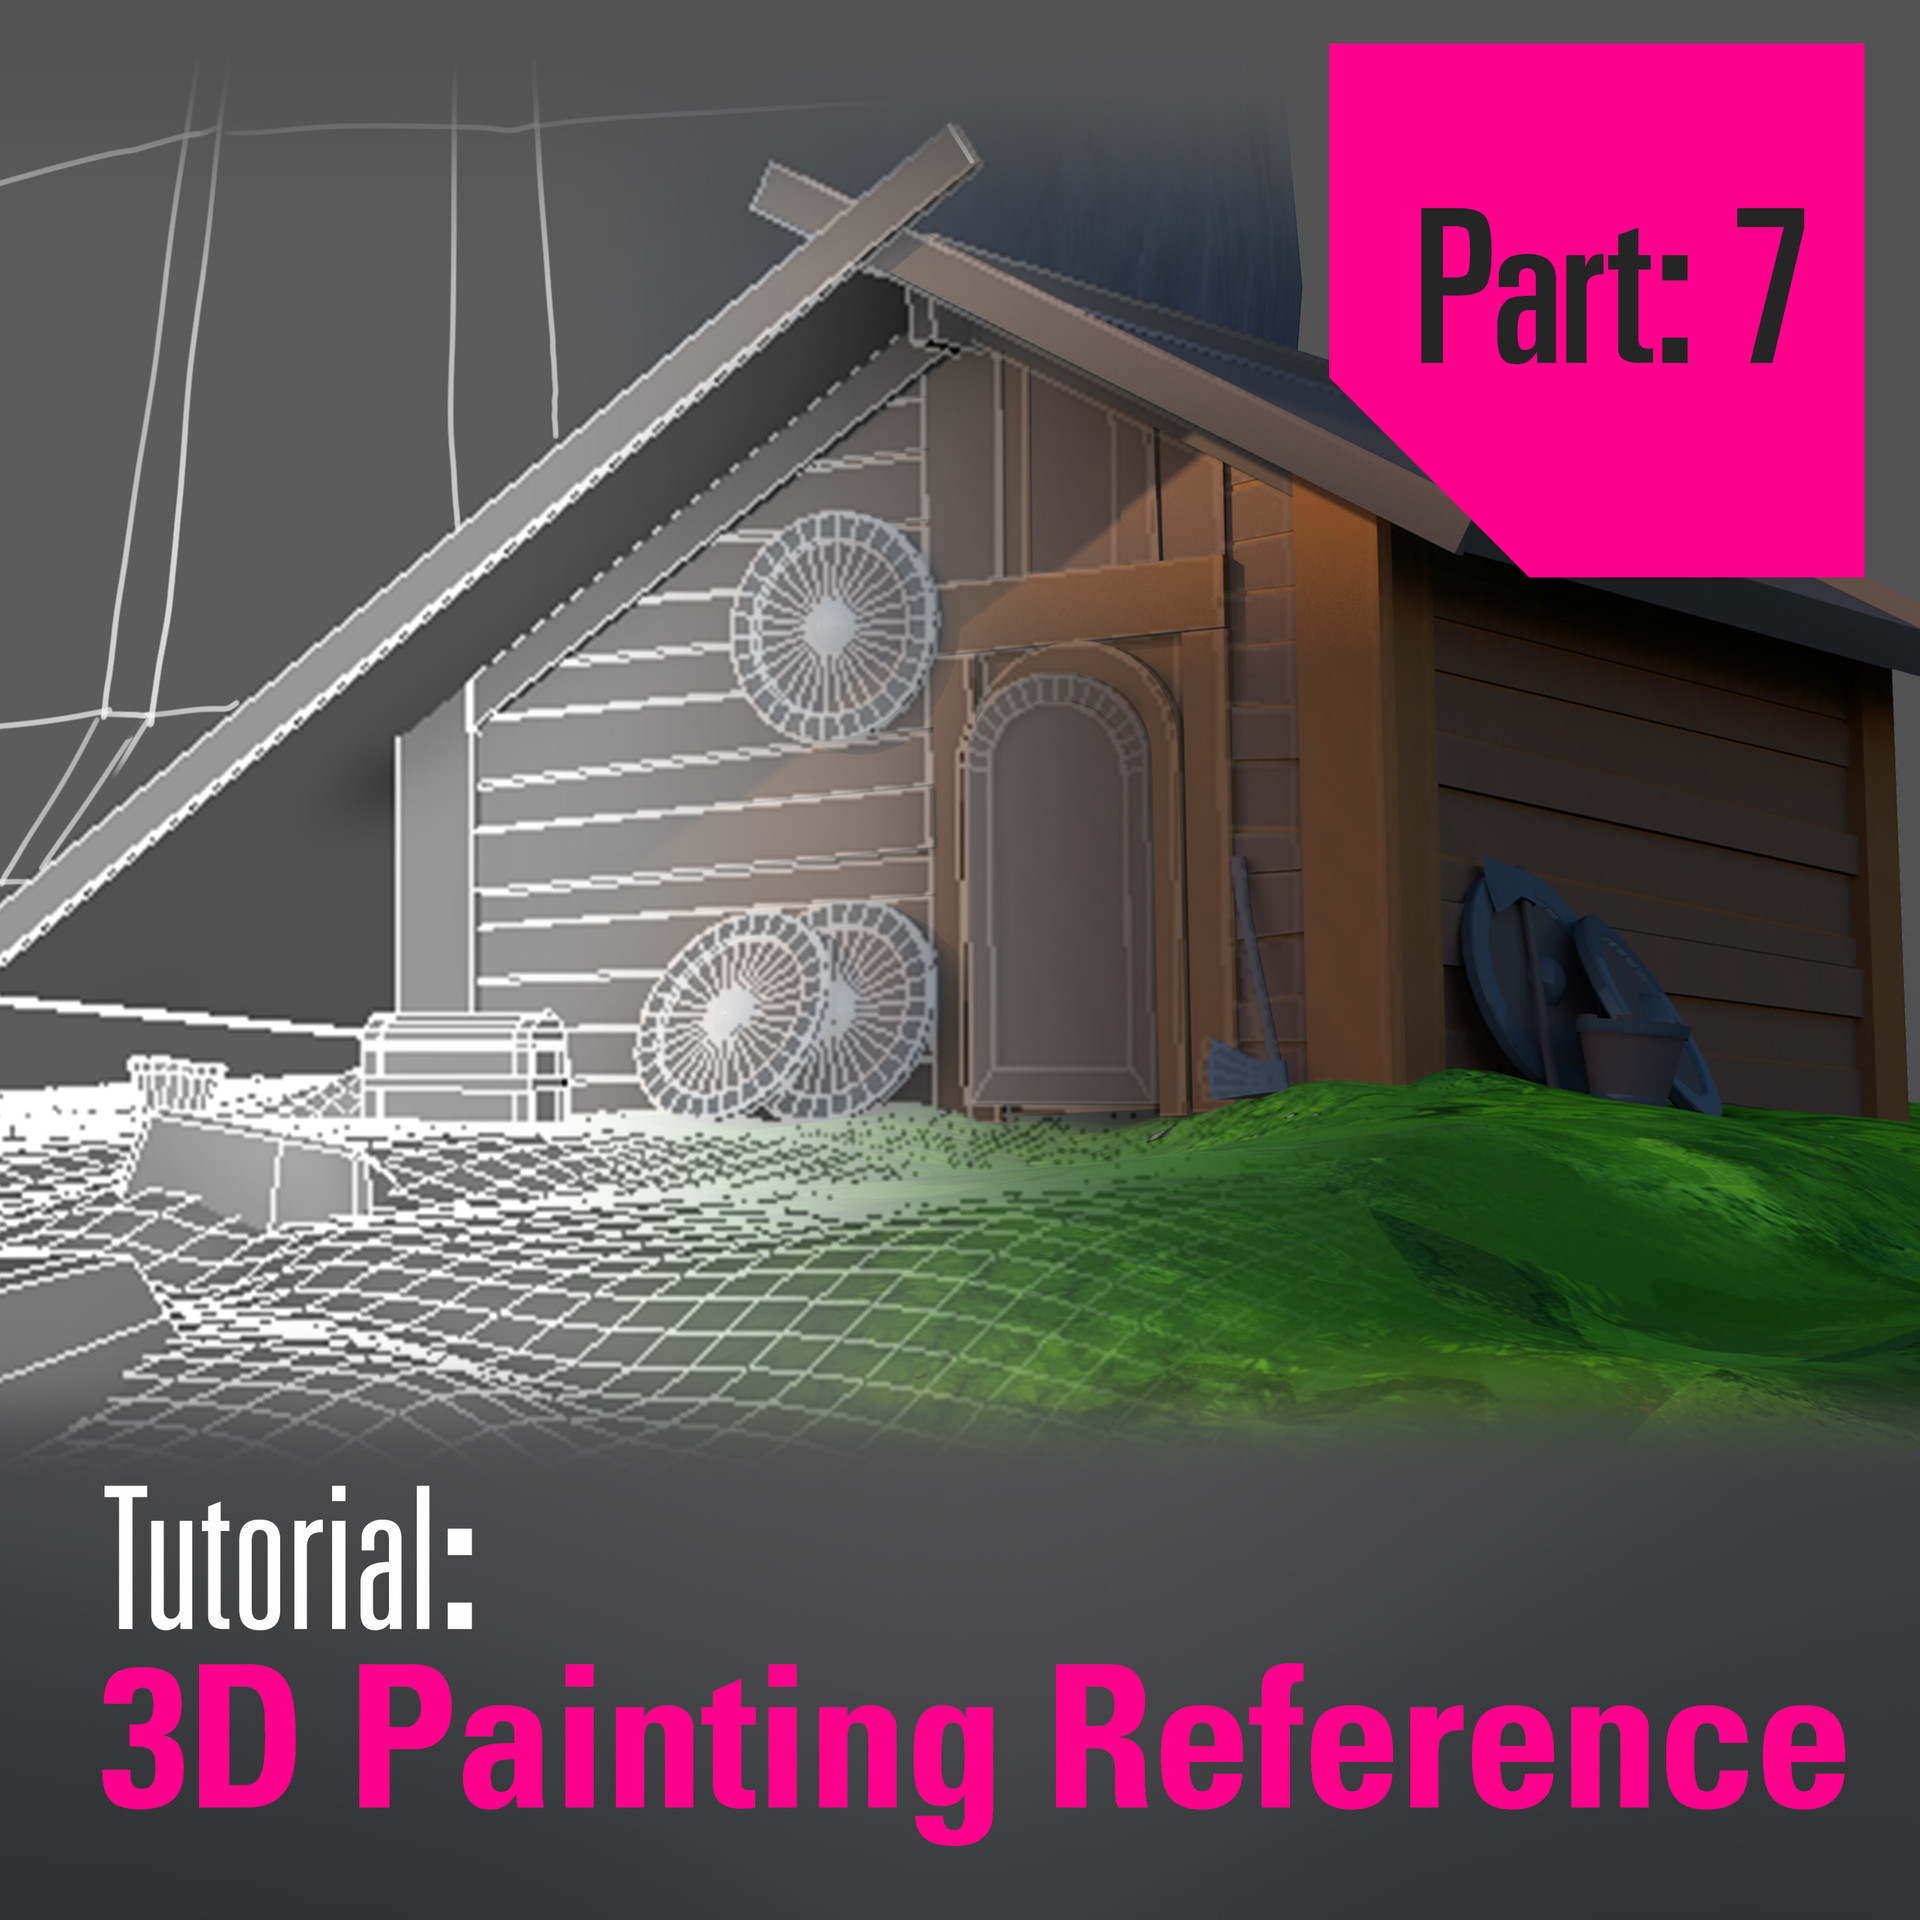 Tutorial: 3D Painting Reference Creation - Part 7